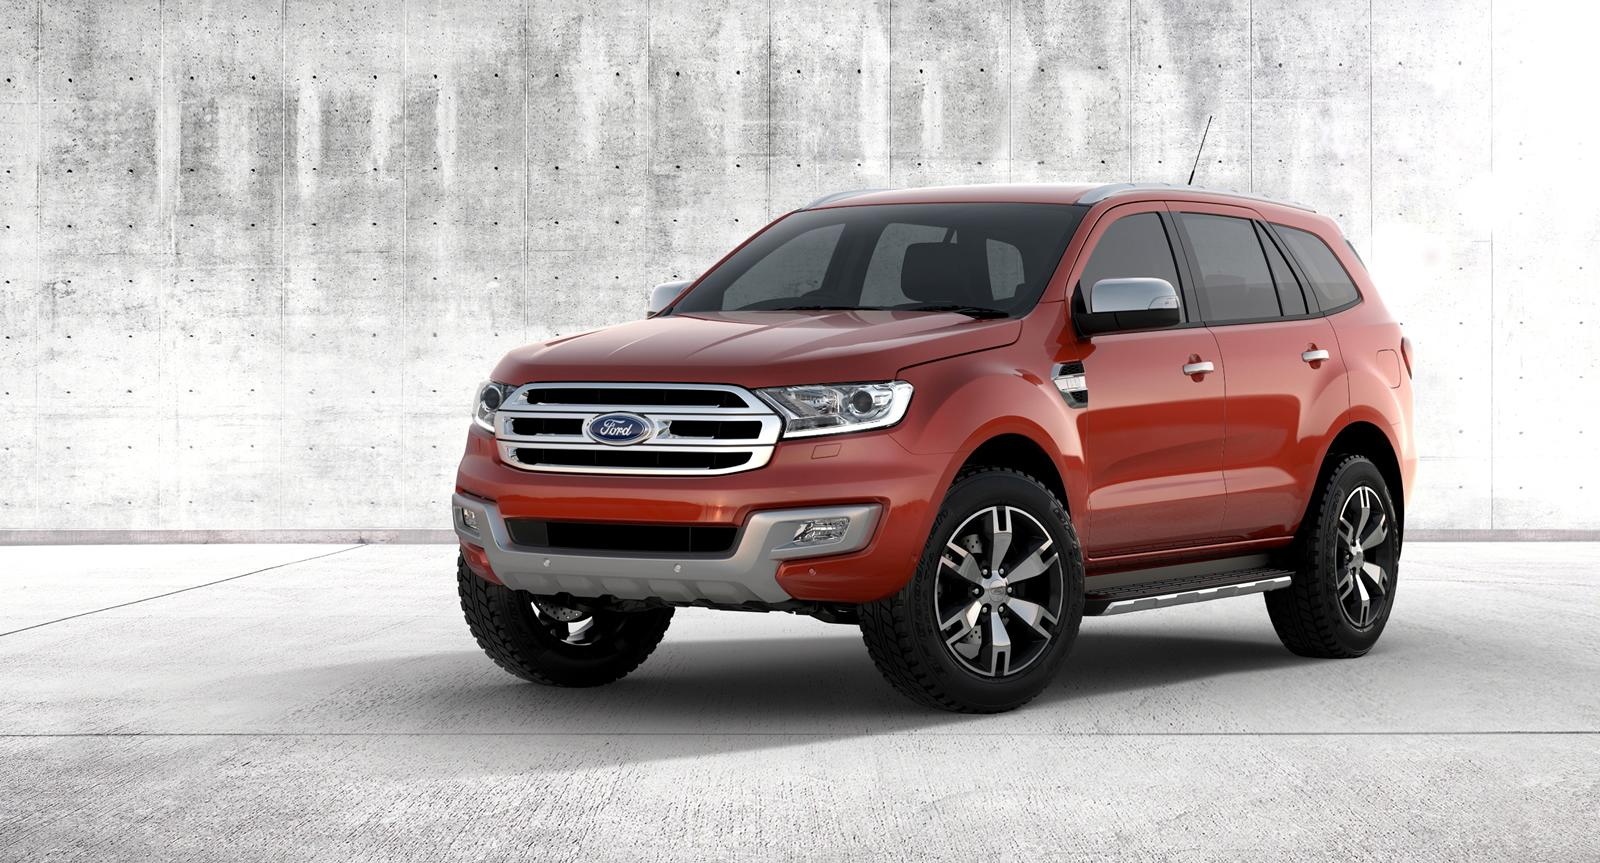 The all-new Australian-developed Ford Everest has been fully unveiled